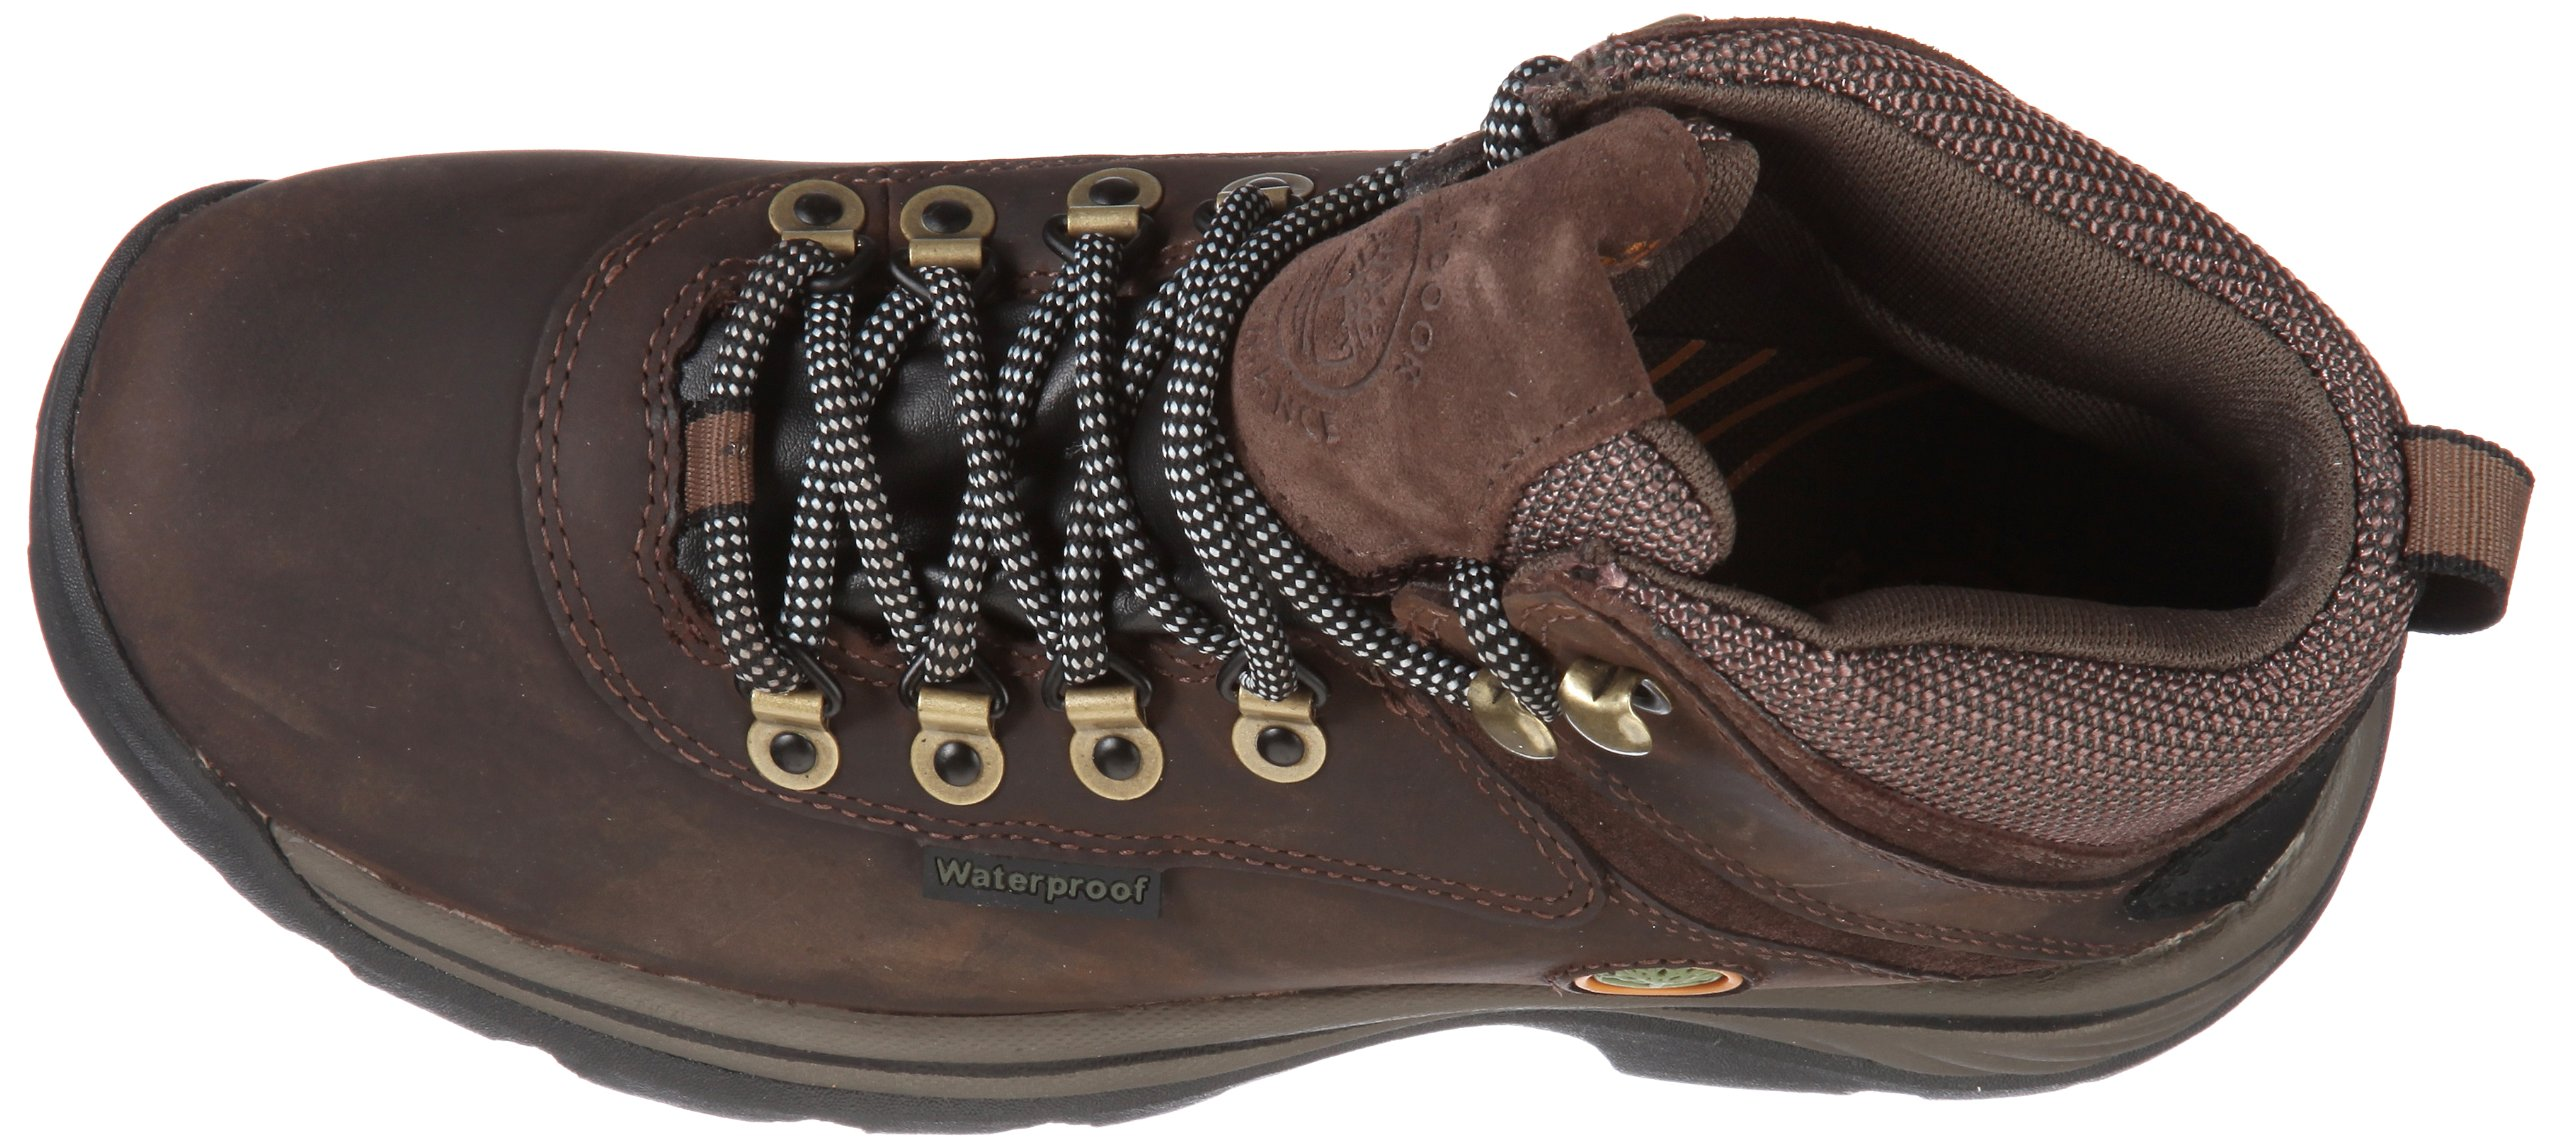 Timberland Women's White Ledge Mid Ankle Boot,Brown,9.5 W US by Timberland (Image #7)